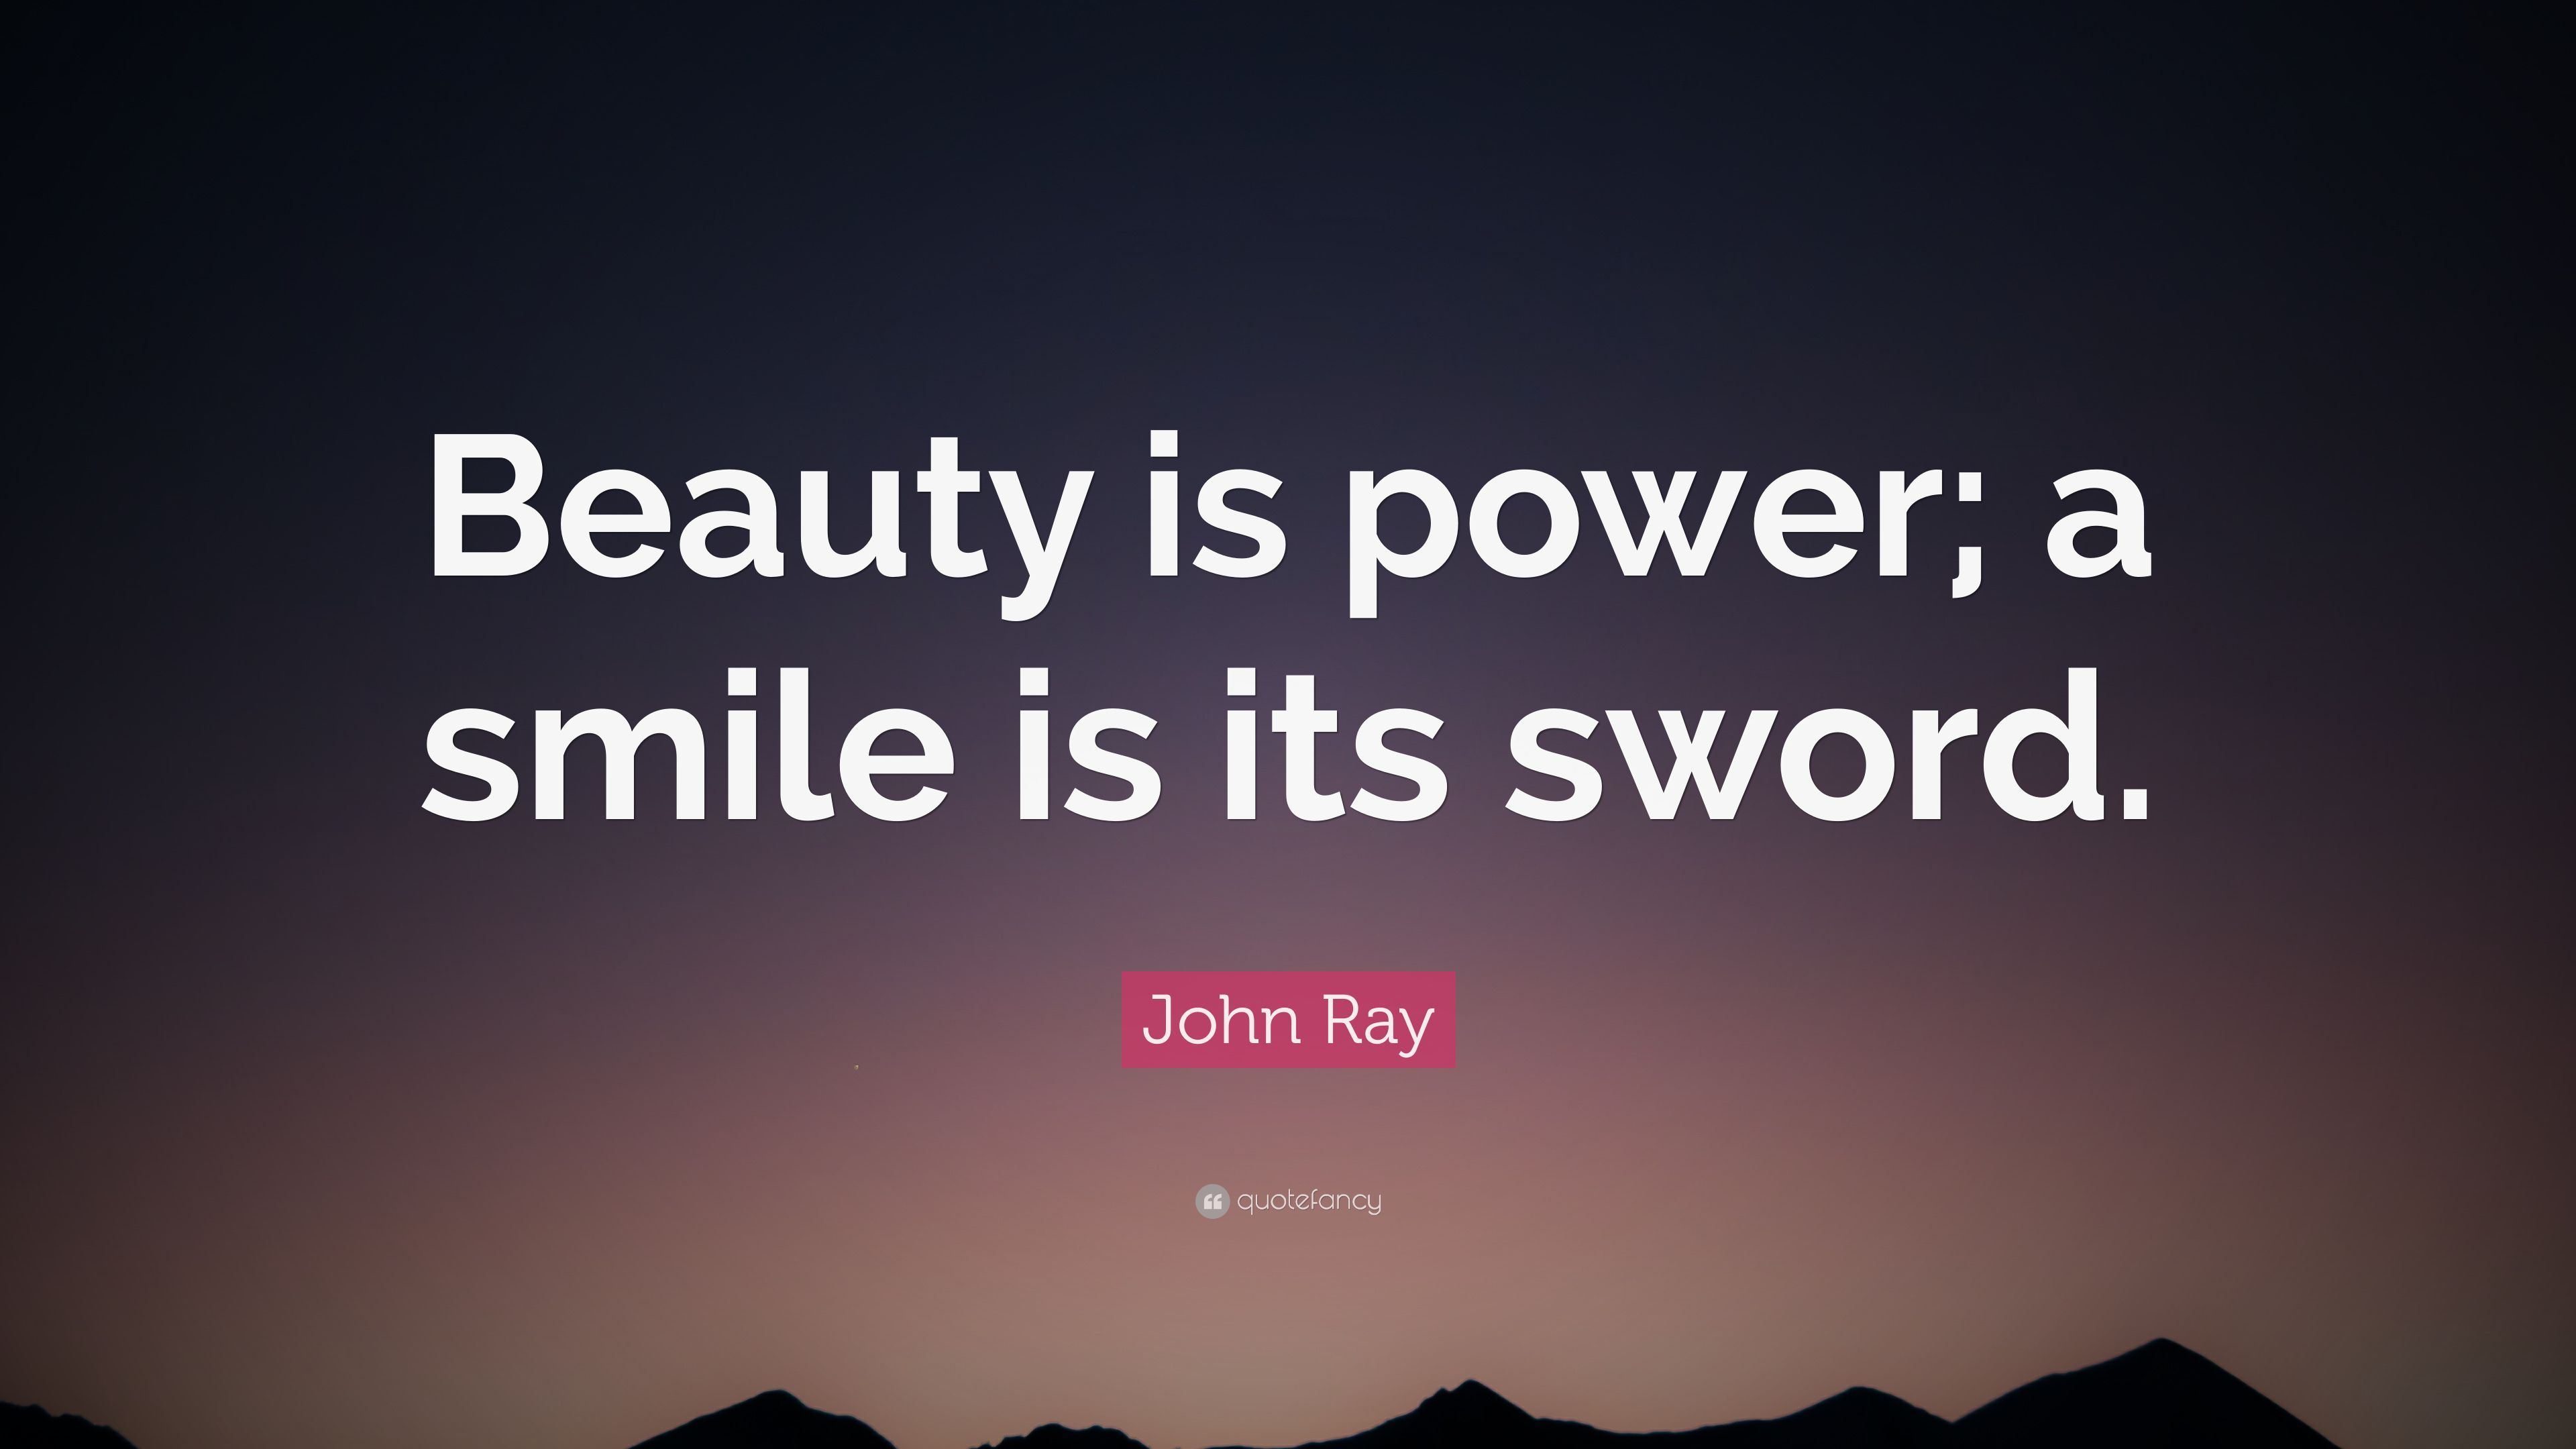 Shakespeare Wallpapers With Quotes John Ray Quote Beauty Is Power A Smile Is Its Sword